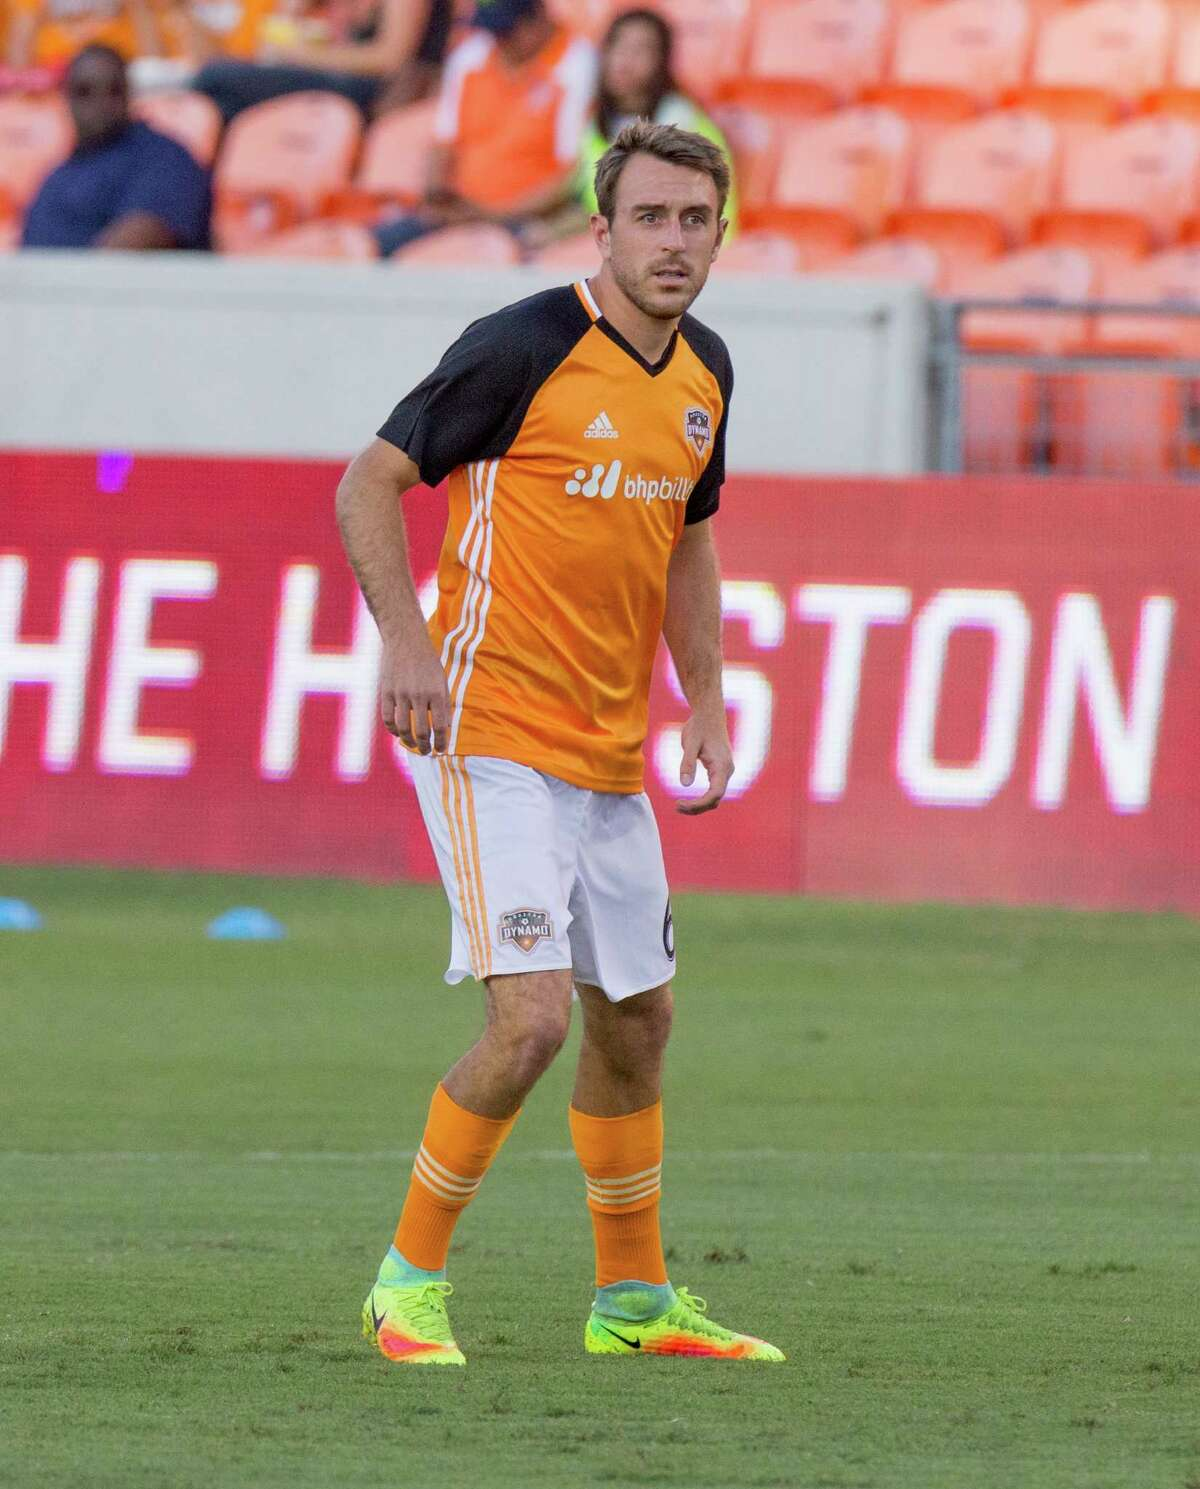 Houston Dynamo midfielder David Rocha (6) on the field during practice before action between the between the Houston Dynamo and the San Jose Earthquakes during an MLS soccer game at BBVA Compass, Sunday, July 31, 2016, in Houston. (Juan DeLeon/for the Houston Chronicle)